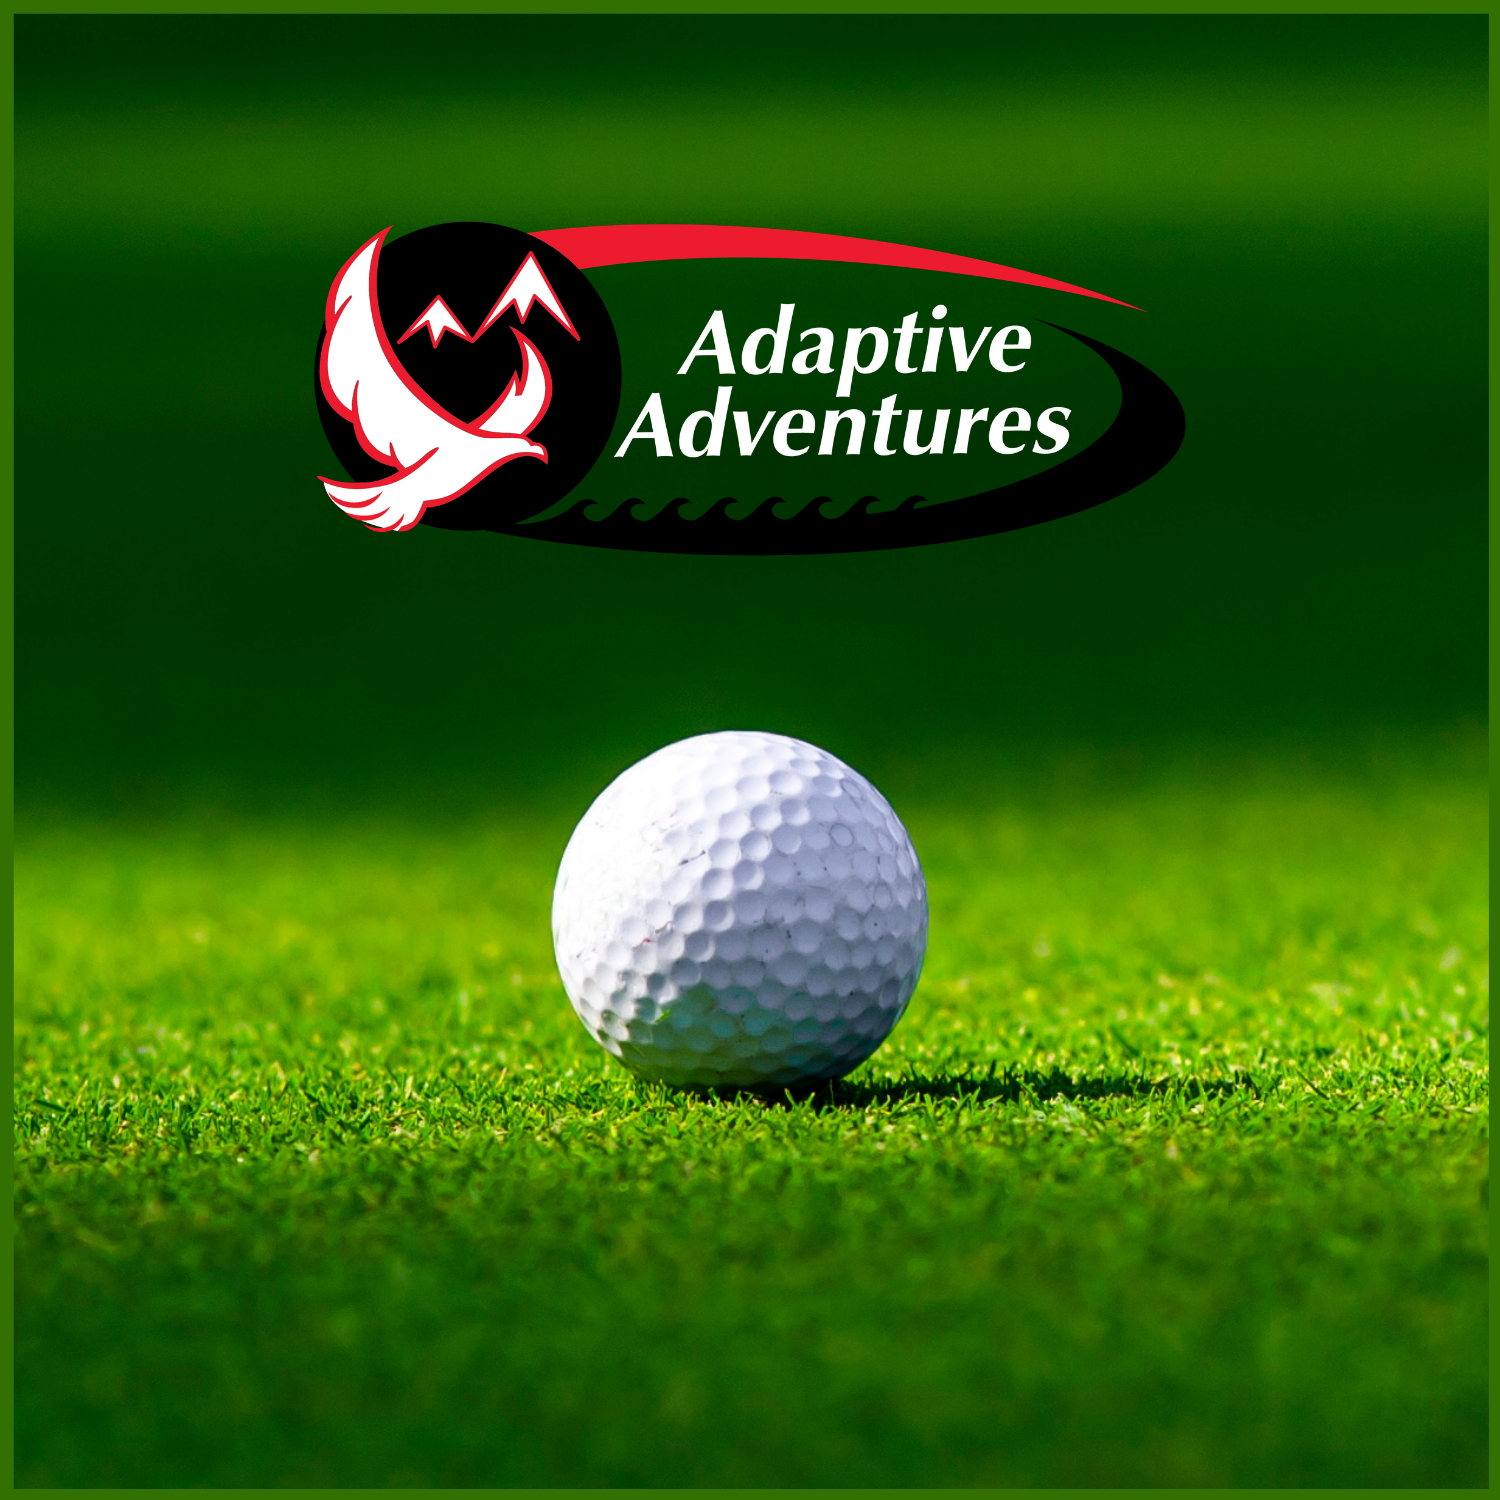 Adaptive Adventures Annual Golf Gathering